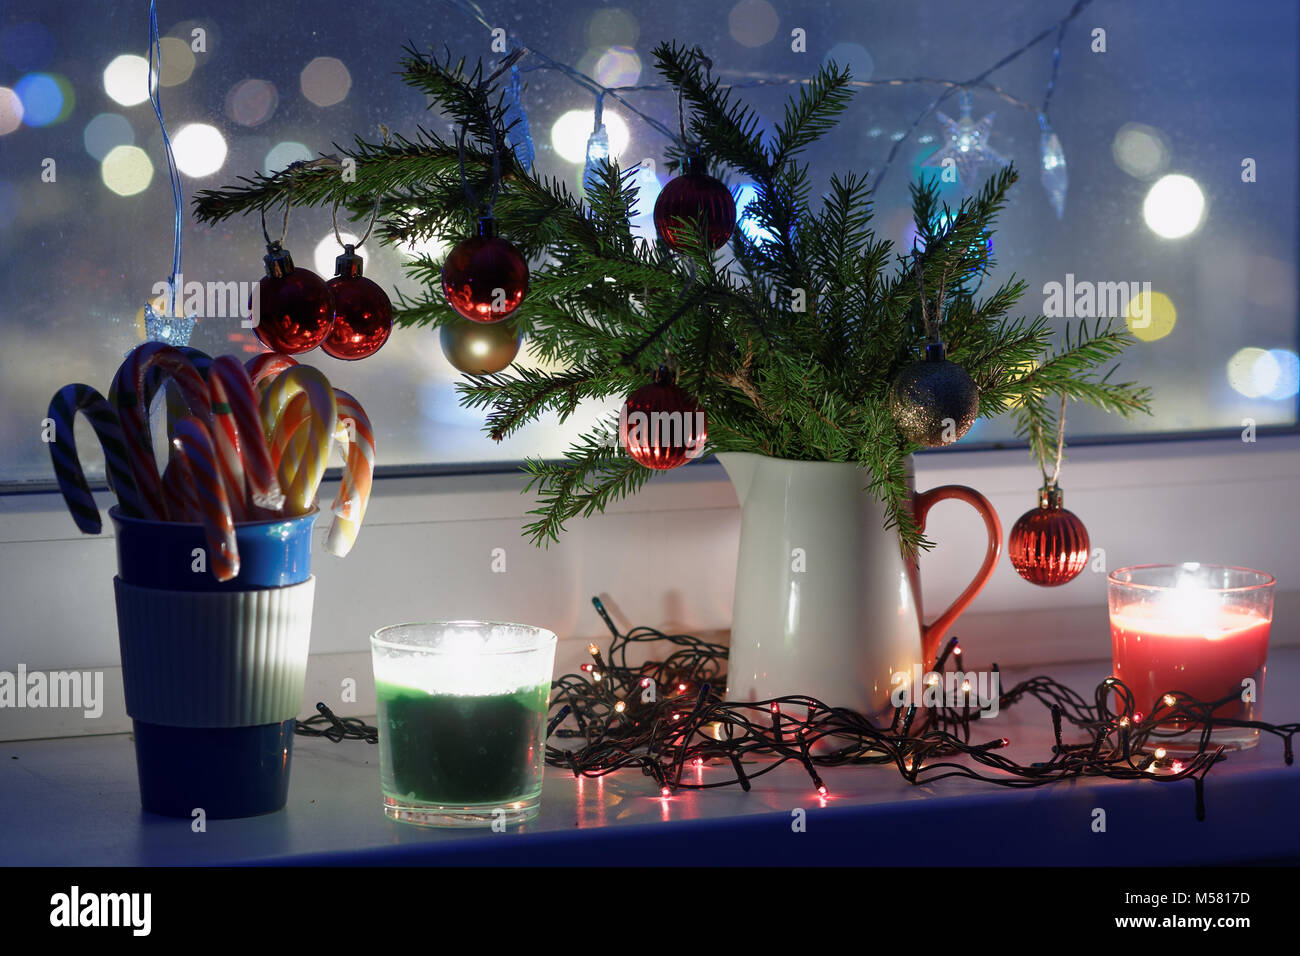 Christmas decorations and candles on a window sill - Stock Image